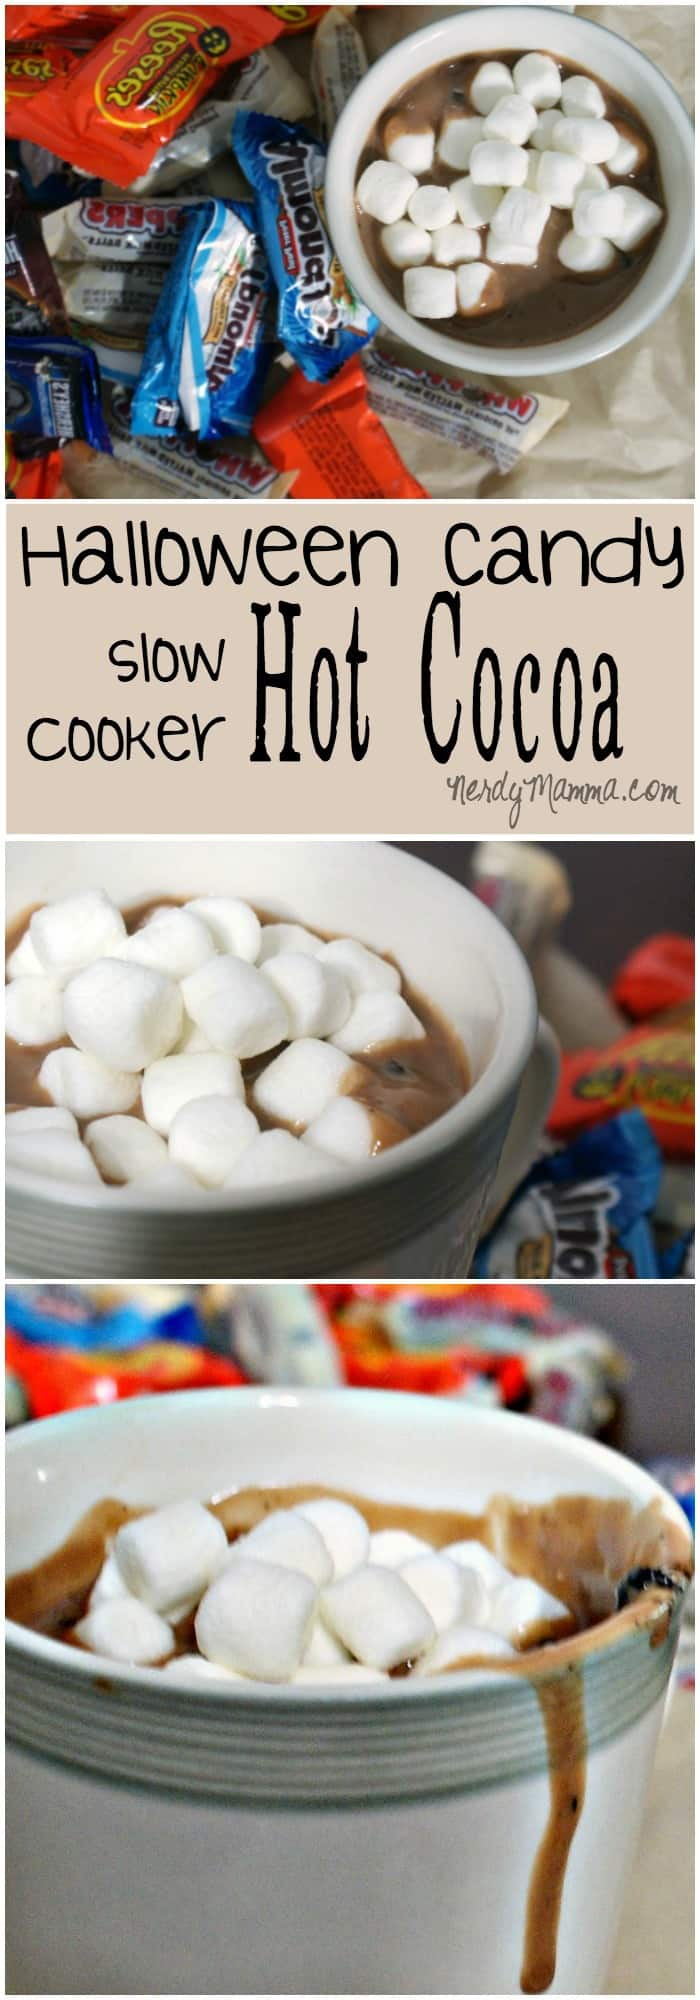 I loved making this crock pot hot chocolate with the kids. And it didn't hurt that it used up several pieces of leftover halloween candy.